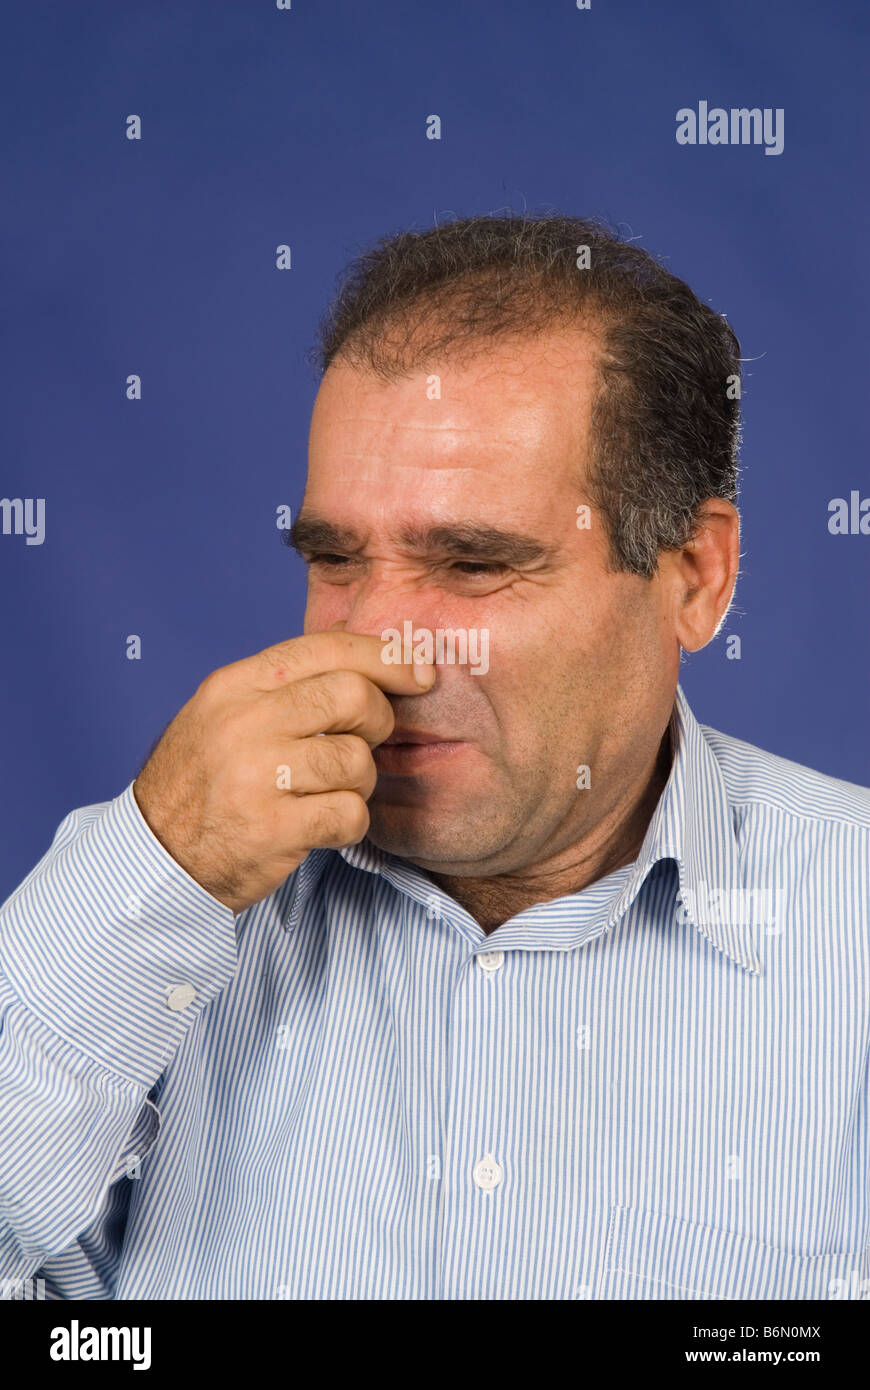 Man holding his nose to avoid bad smell - Stock Image